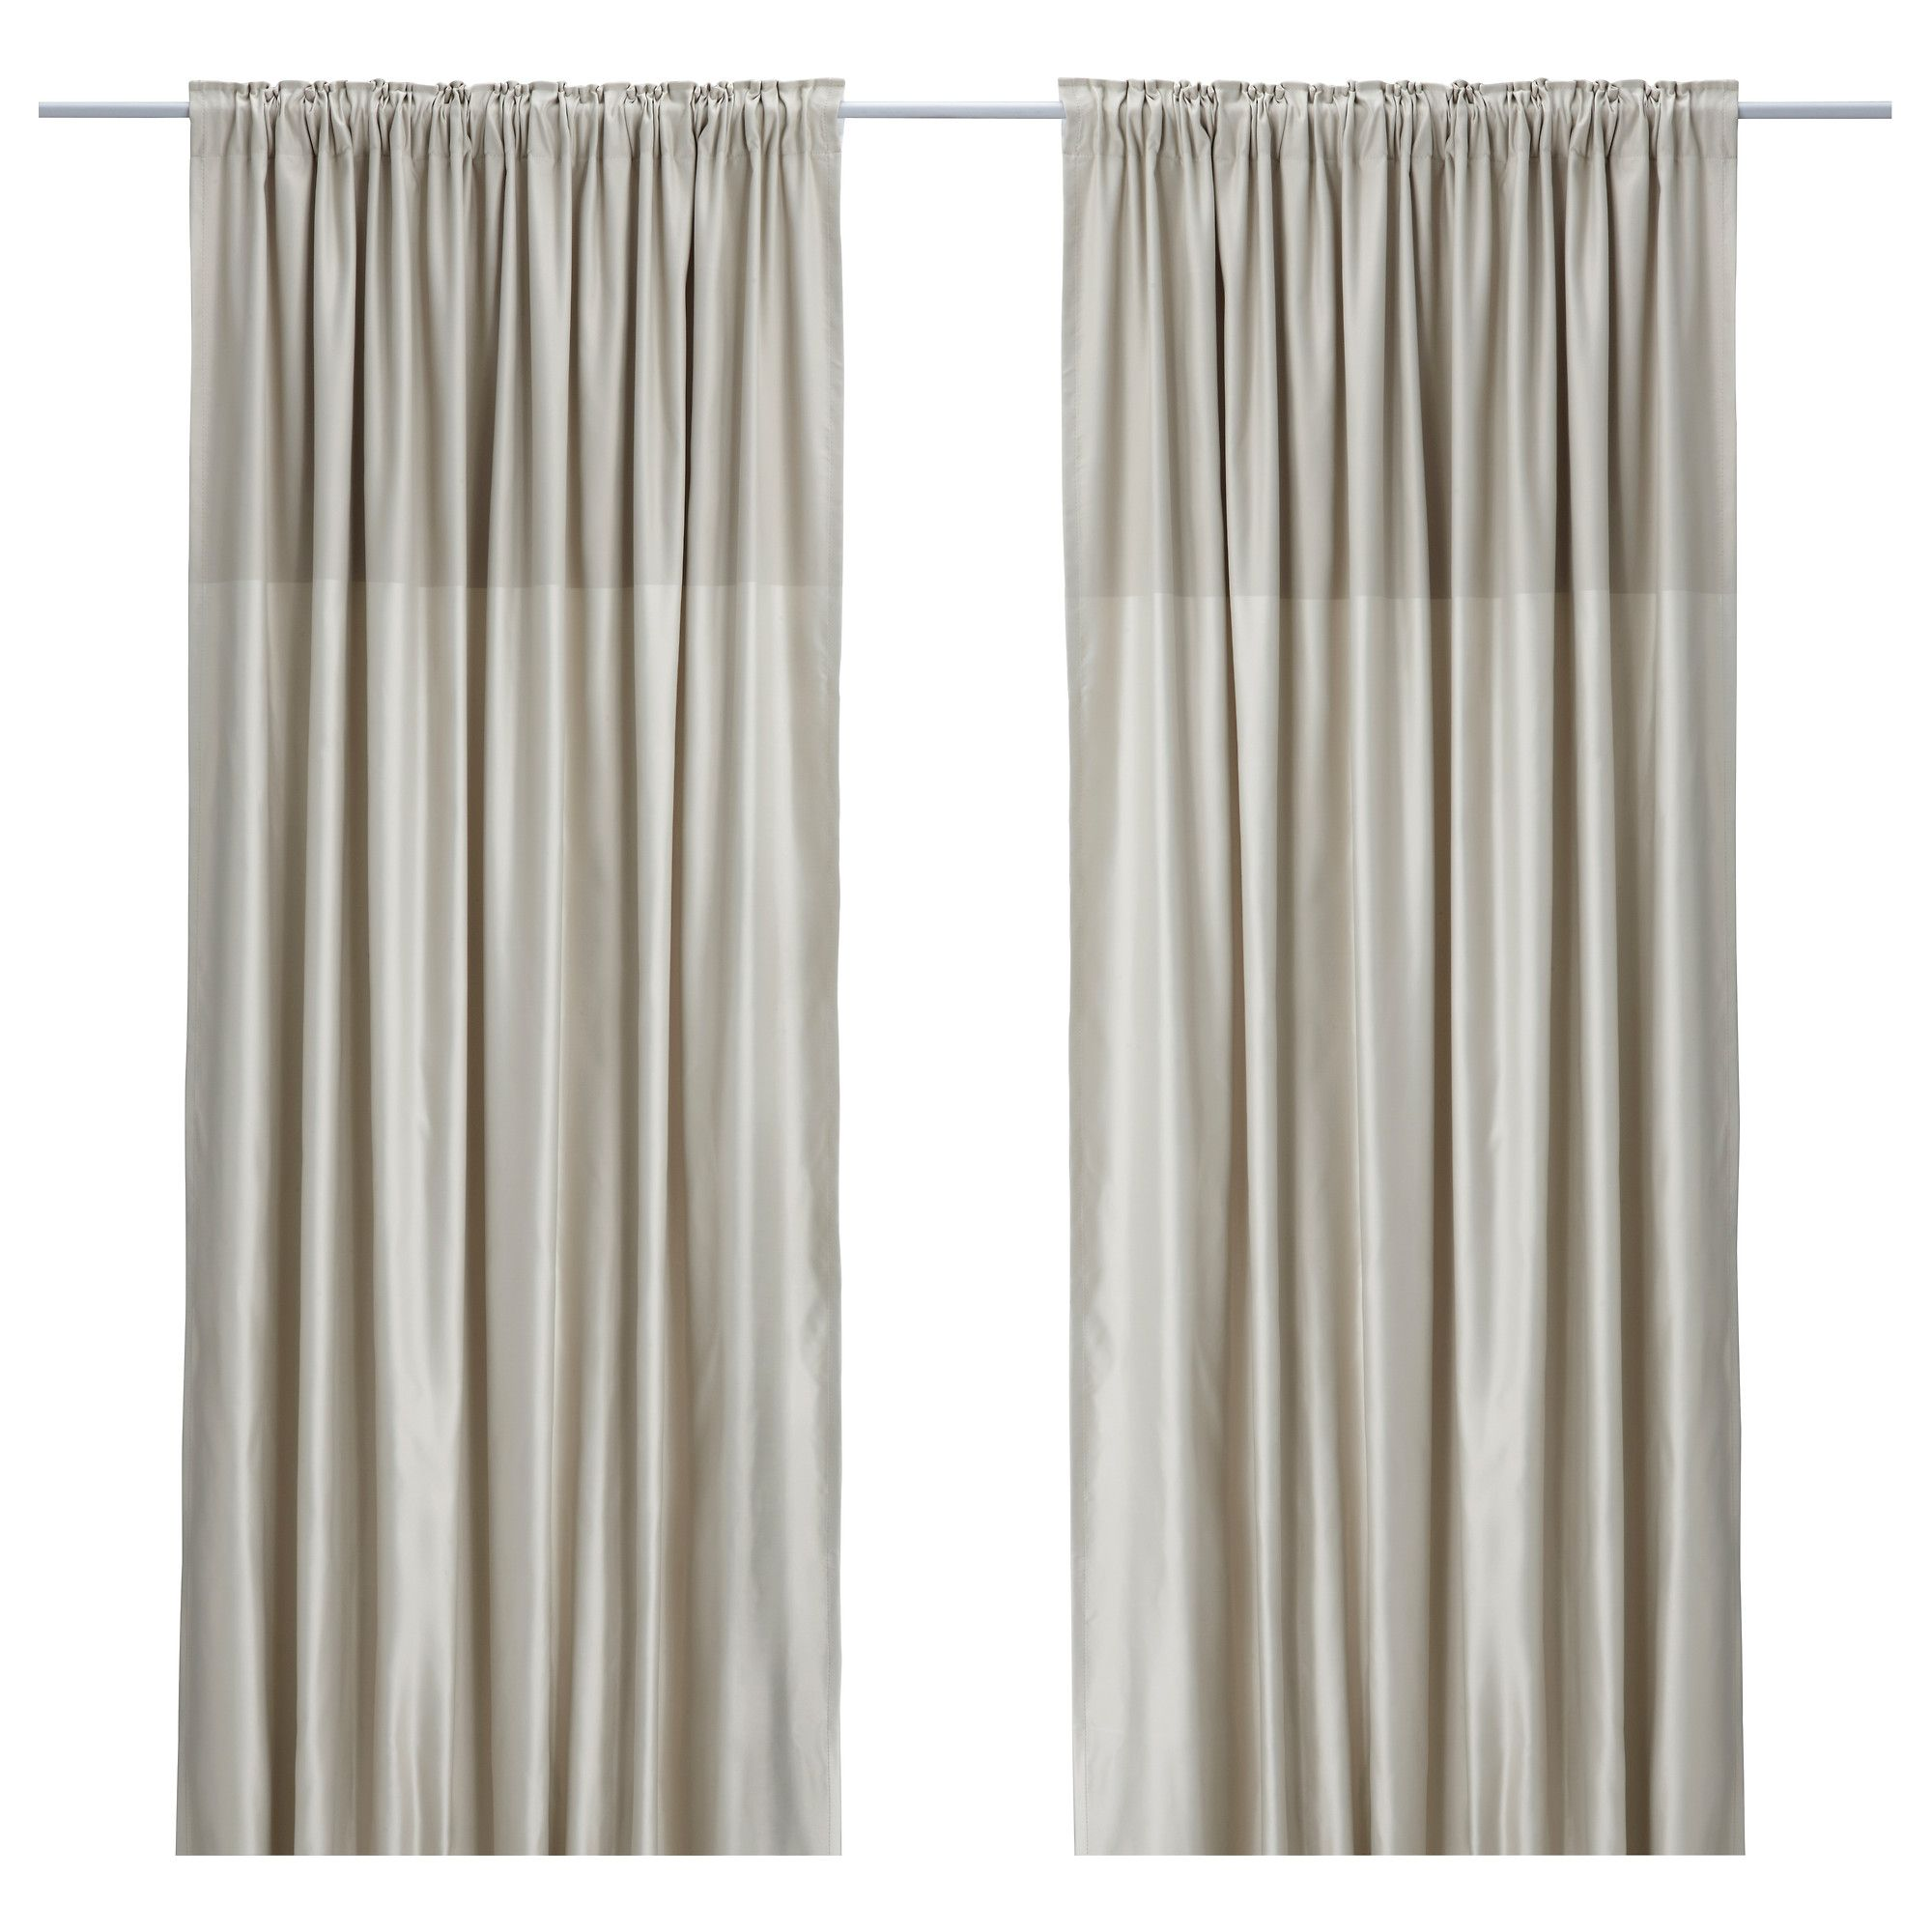 Ikea Us Furniture And Home Furnishings Ikea Curtains Ikea Living Room Bedroom Furniture Beds